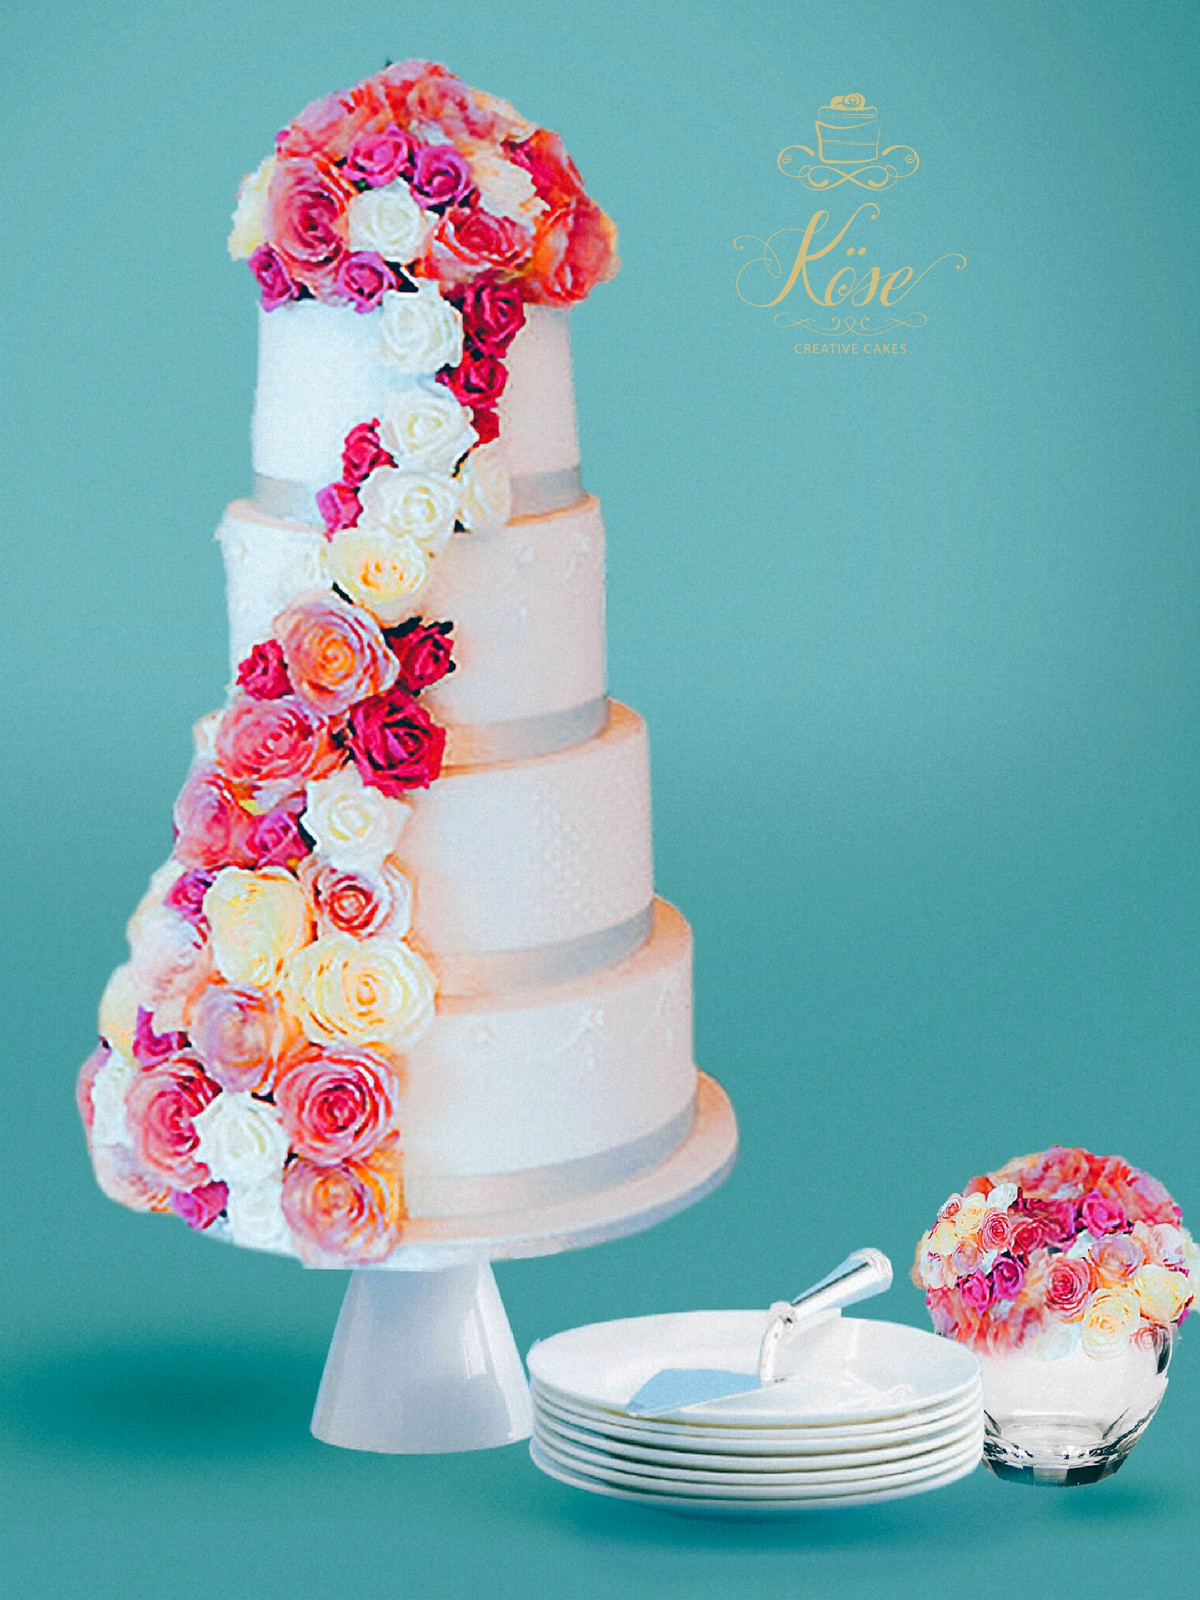 Bespoke Wedding Cakes From Kose Creative Cakes | Order Cakes Online Delivery  | United | Kose Creative Cakes